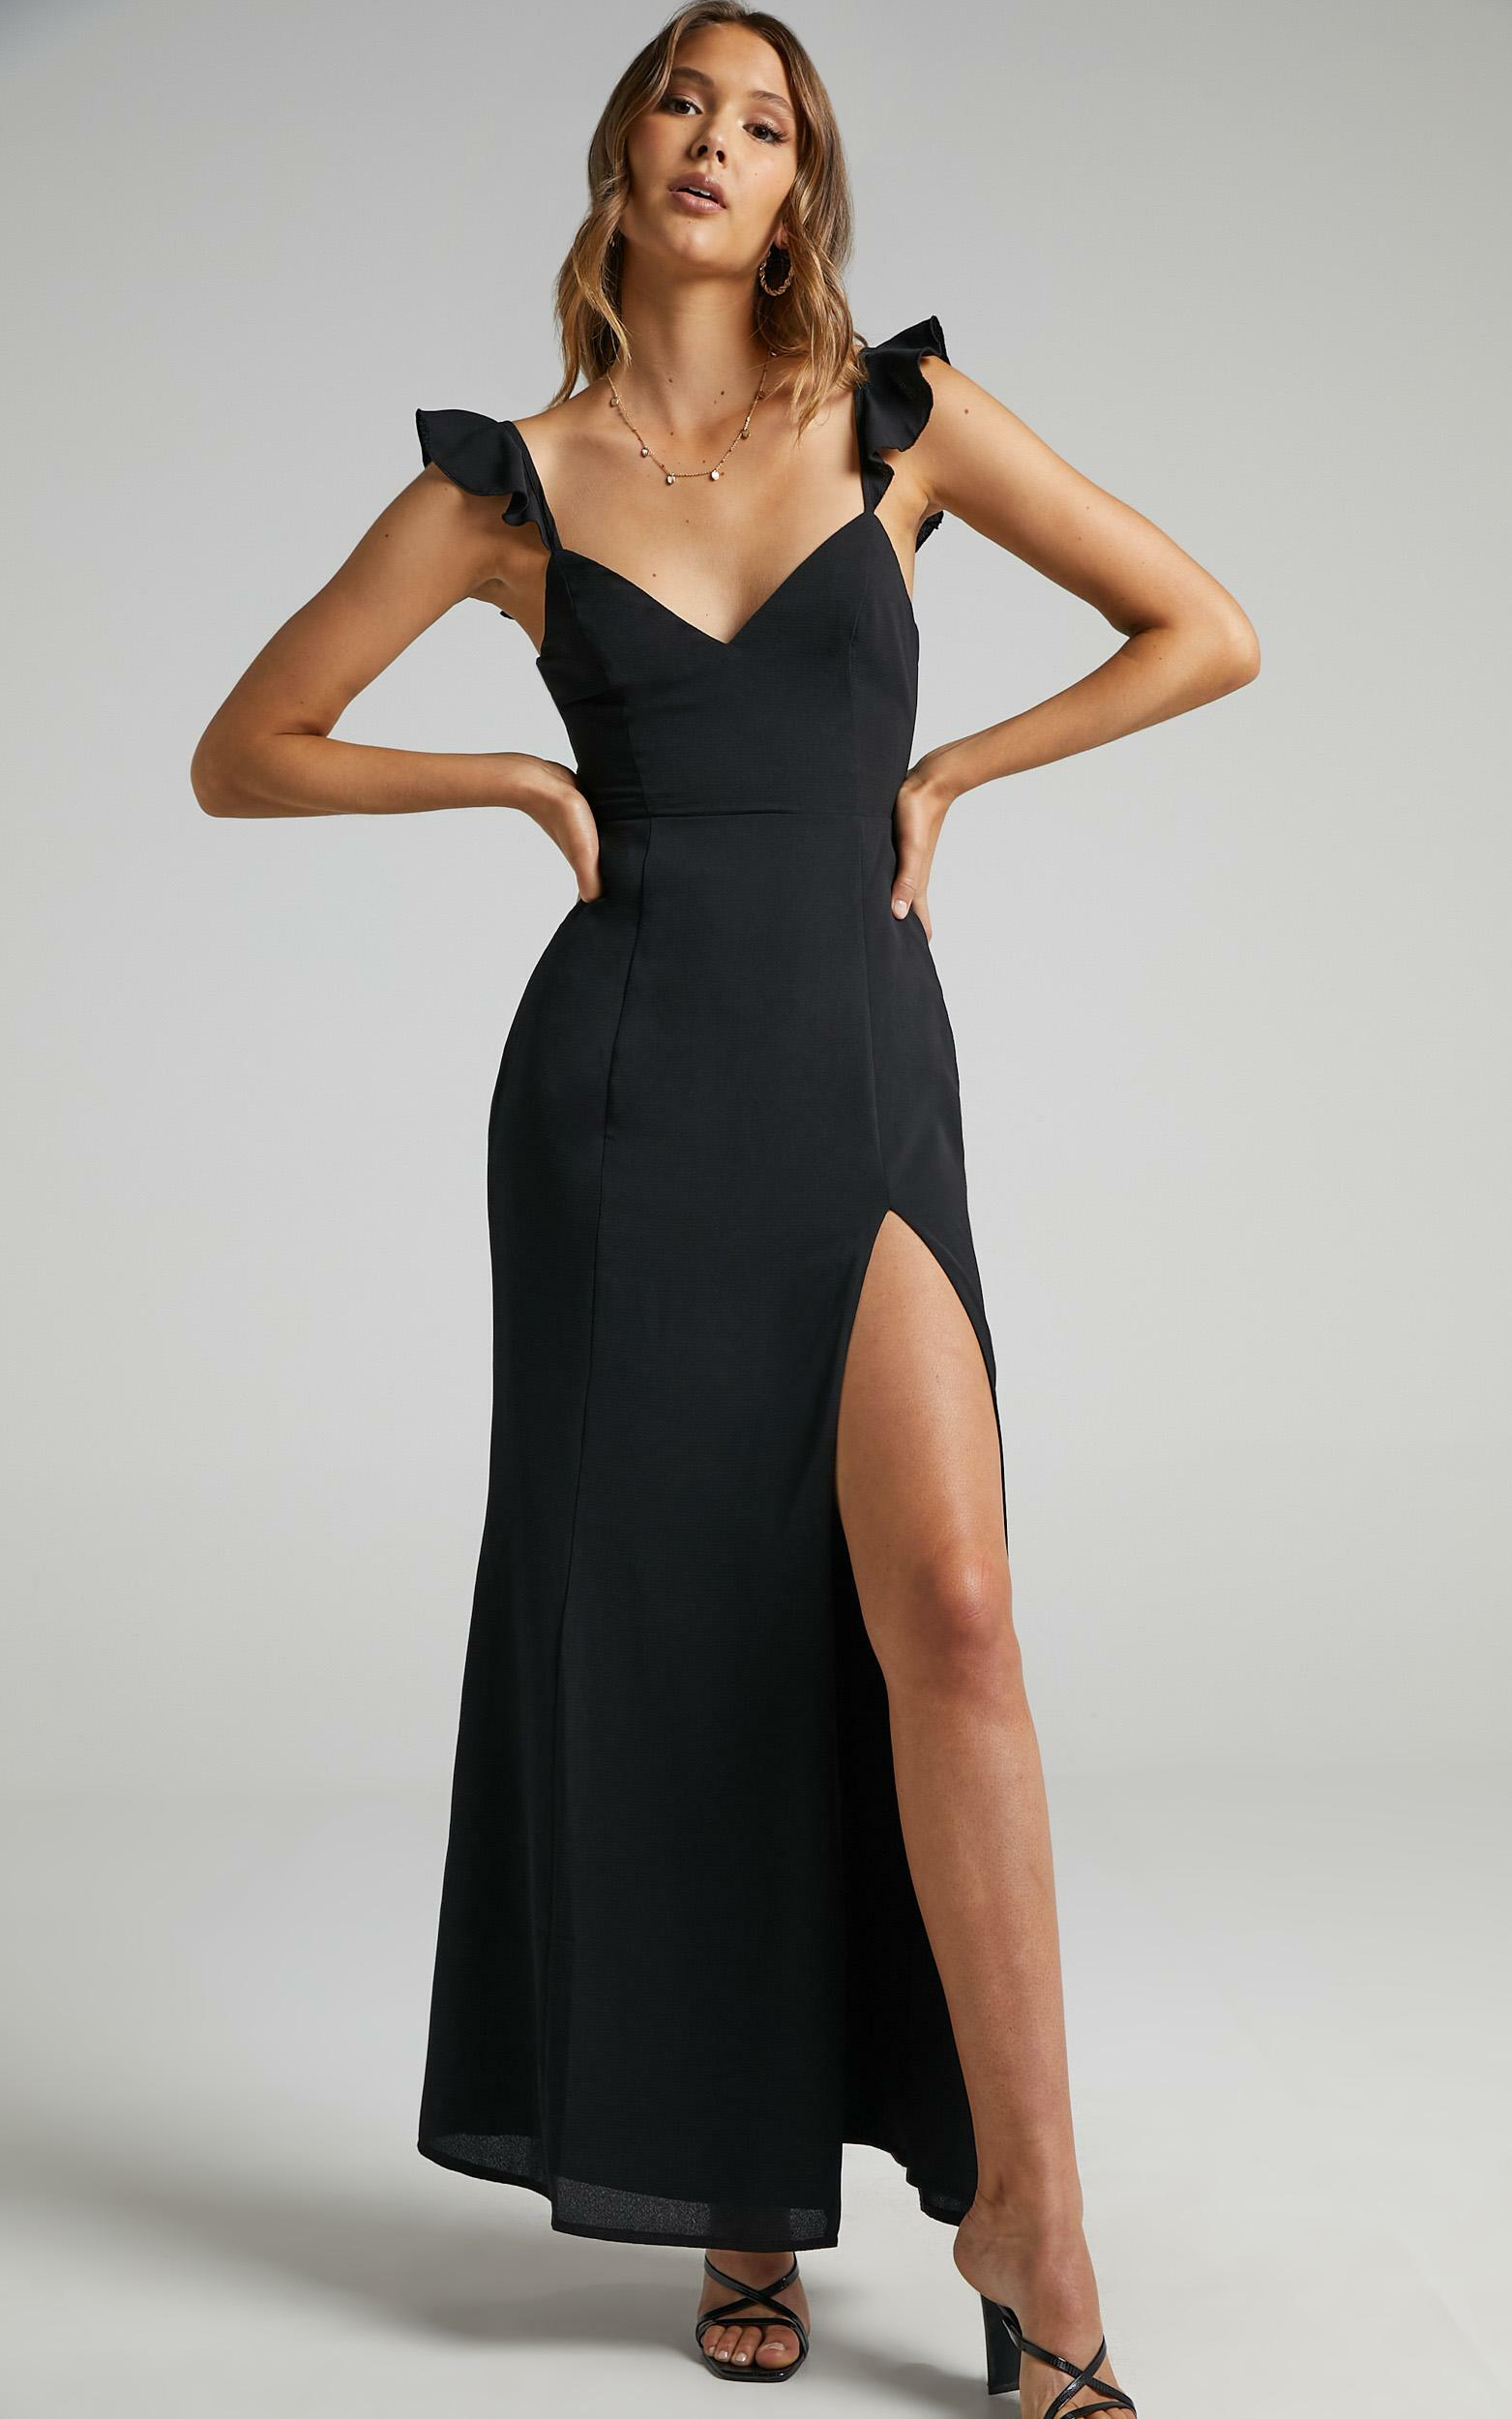 More Than This Ruffle Strap Maxi Dress in Black - 04, BLK1, hi-res image number null